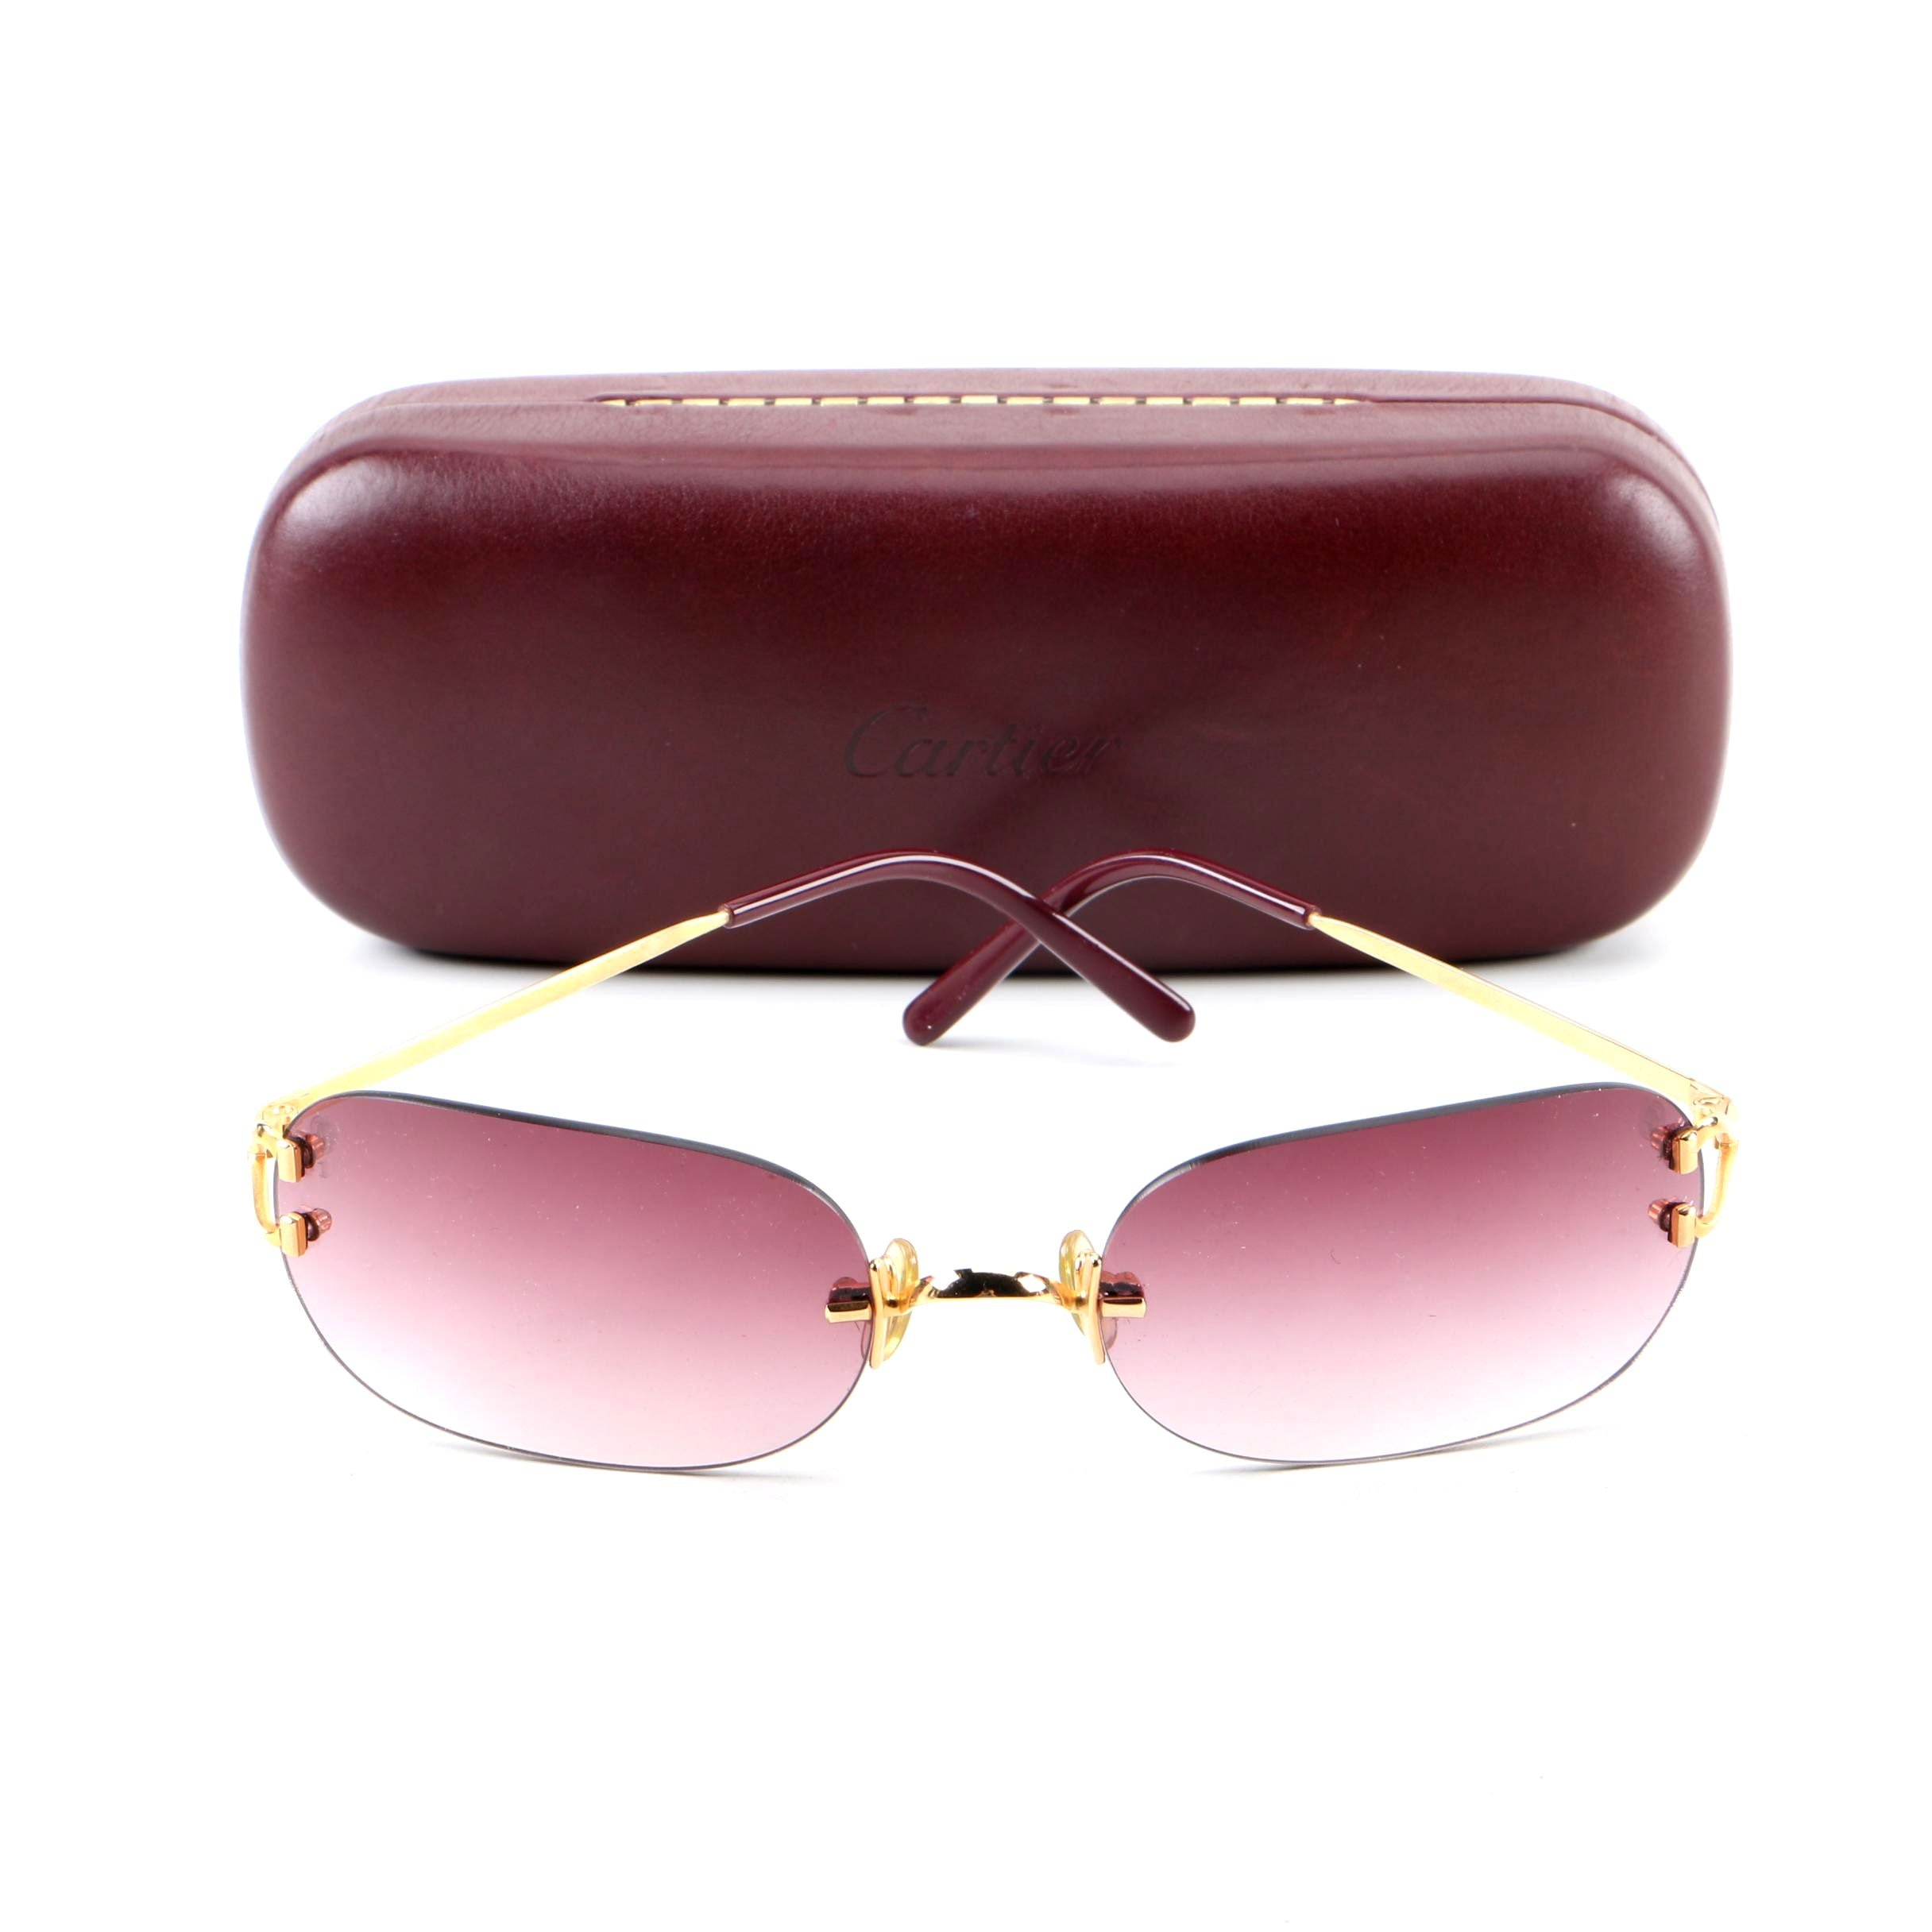 Cartier Limited Edition 20th Anniversary Rimless Sunglasses with Case